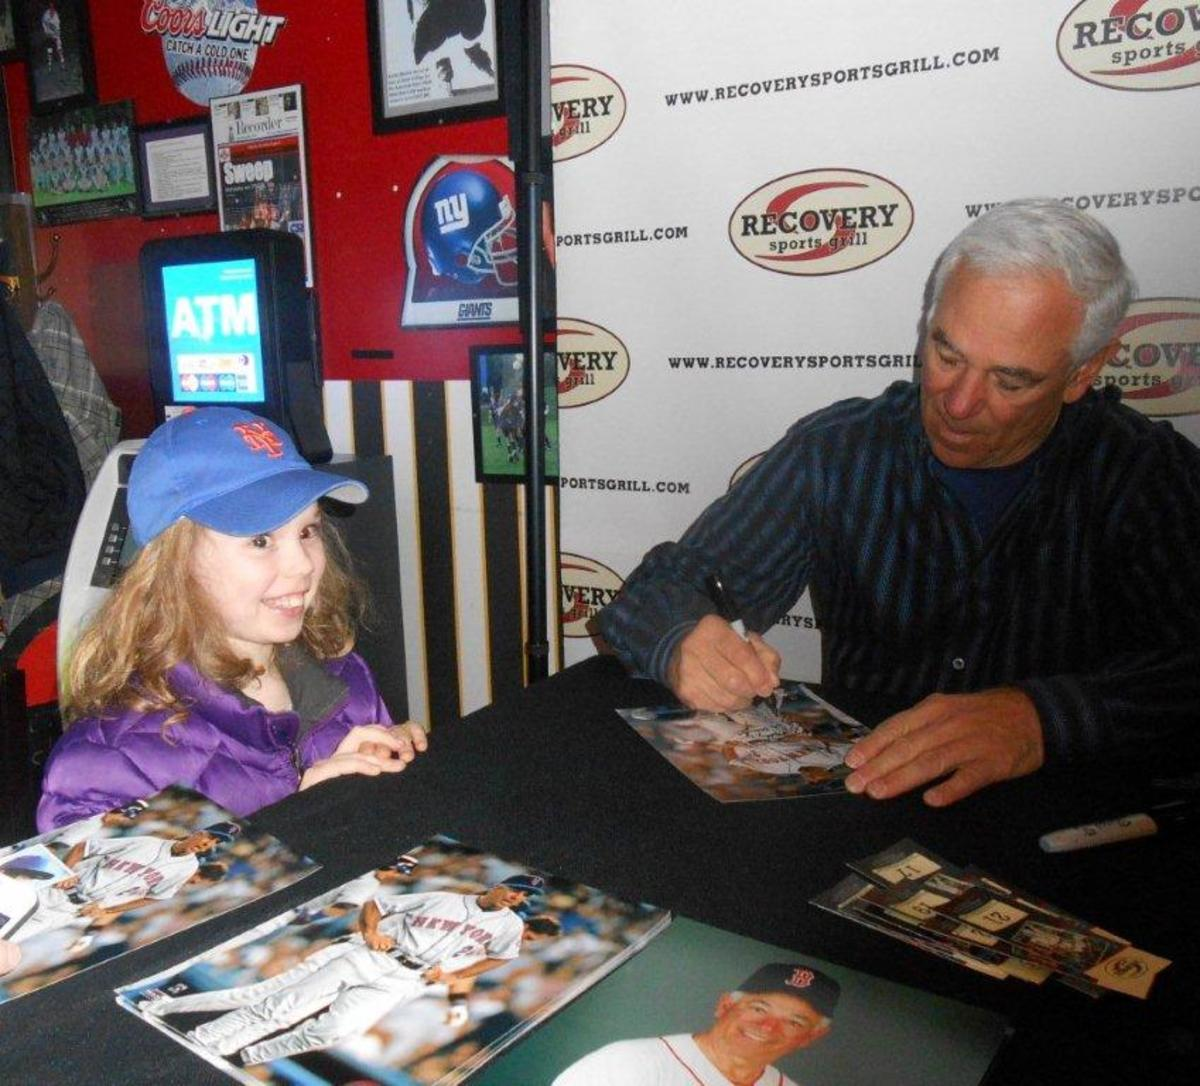 Bobby Valentine signs for fans during a session at Recovery Sports Grill in upstate New York.